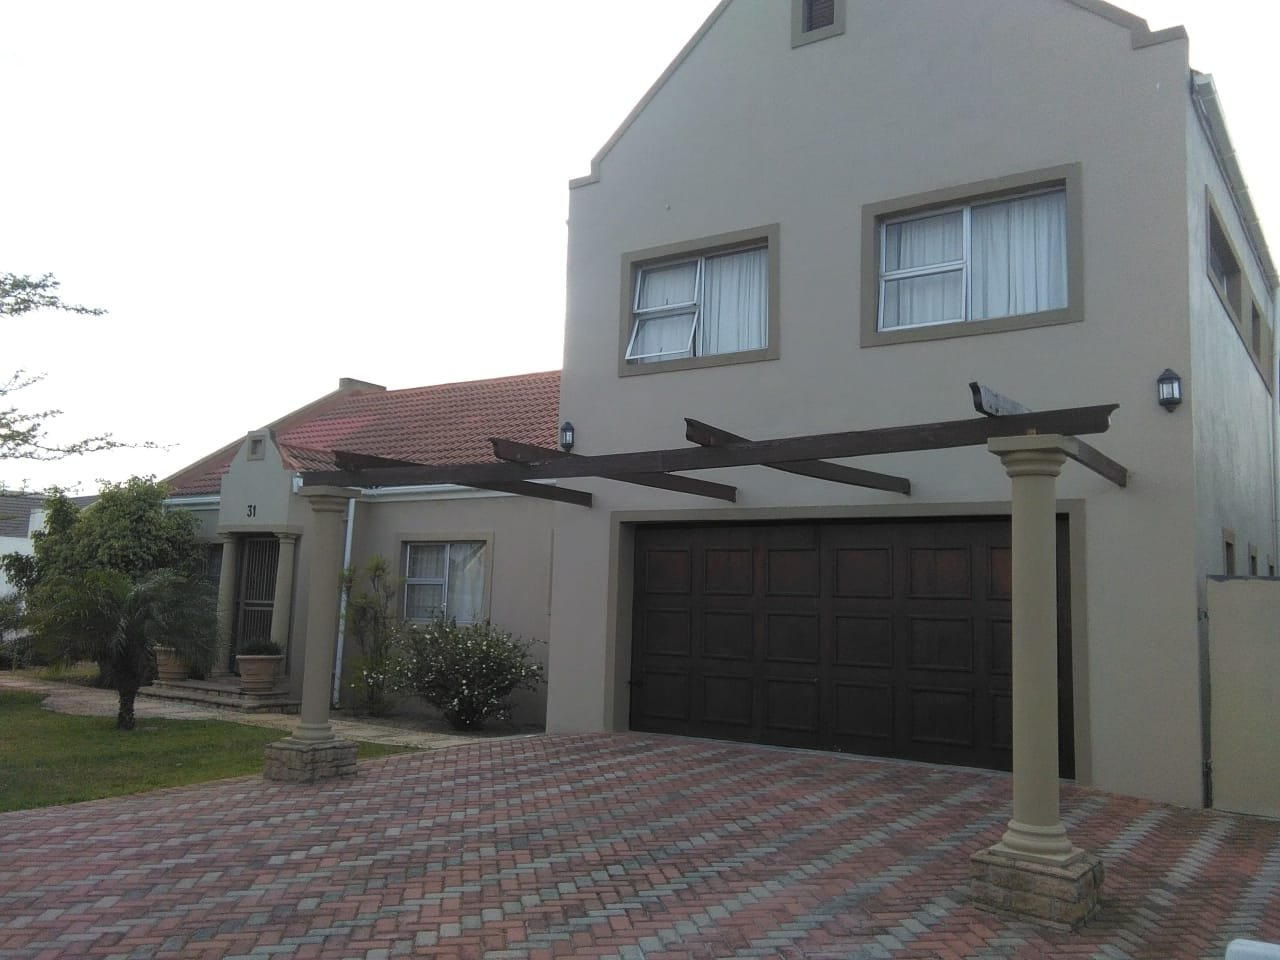 Eikenbosch property for sale. Ref No: 13681621. Picture no 3